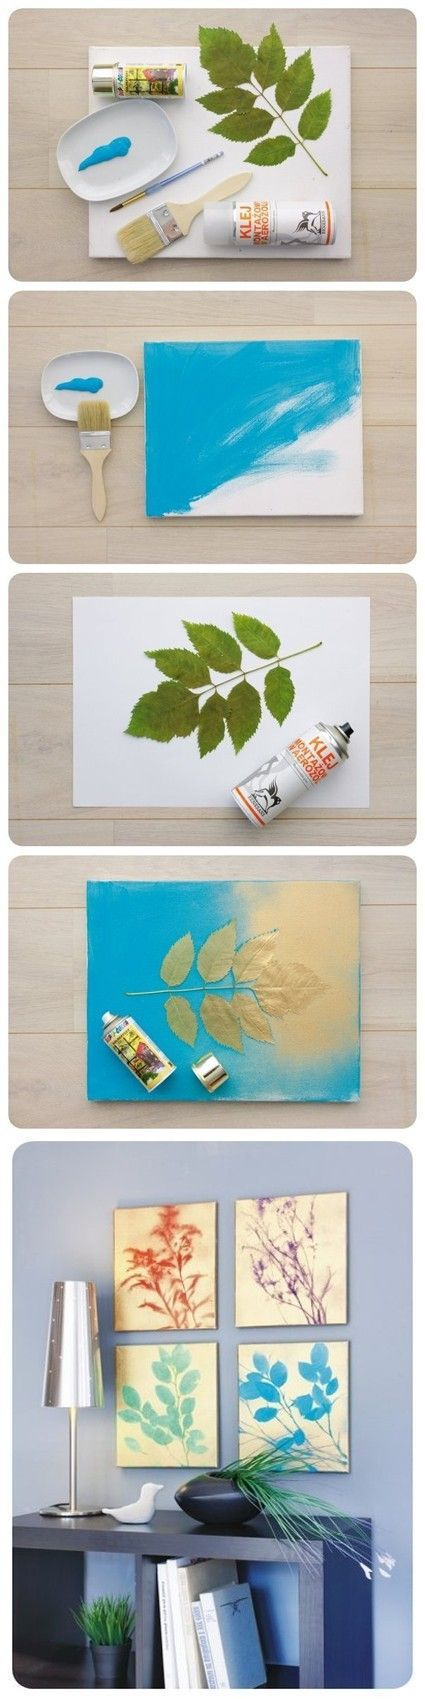 new apartment decorations.: Wall Decor, Leaf Paintings, Leaf Prints, Diy Art, Canvas Art, Paintings Leaves, Diy Wall Art, Sprays Paintings, Leaf Art